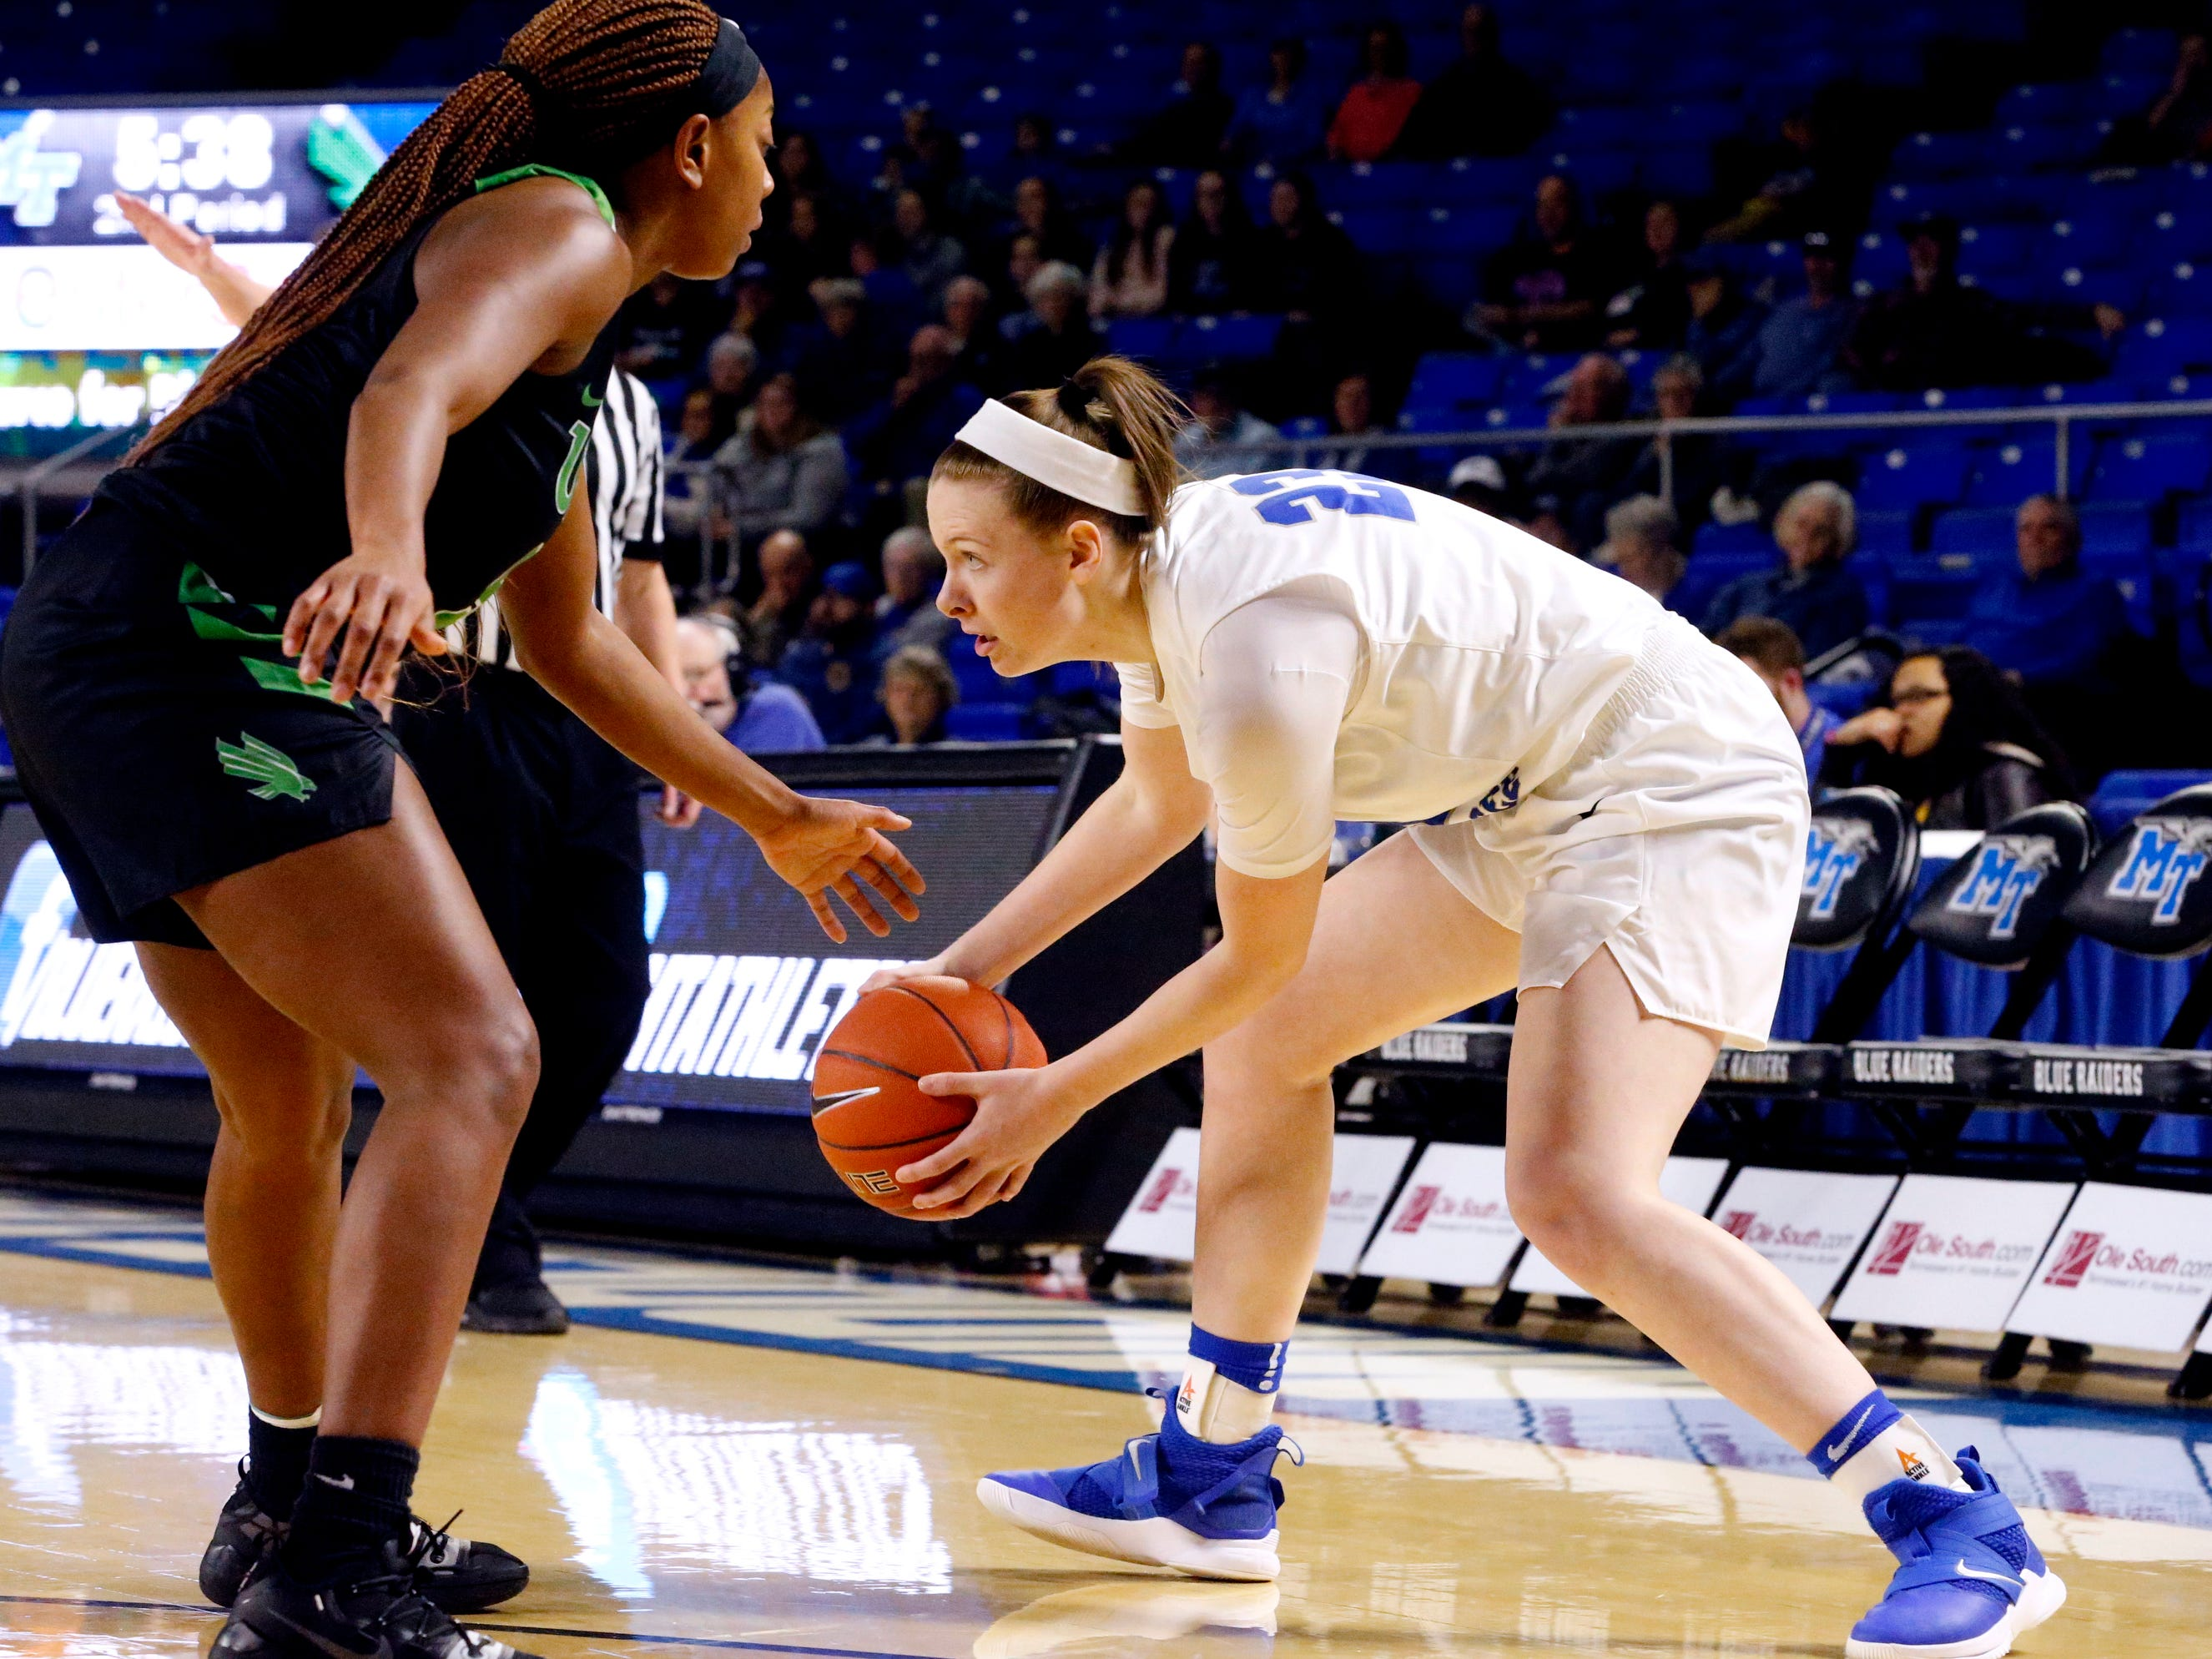 MTSU's guard Alexis Whittington (23) looks for a player t pass to as North Texas' guard Velma Mitchell (5) guards her on Saturday Jan. 26, 2019.